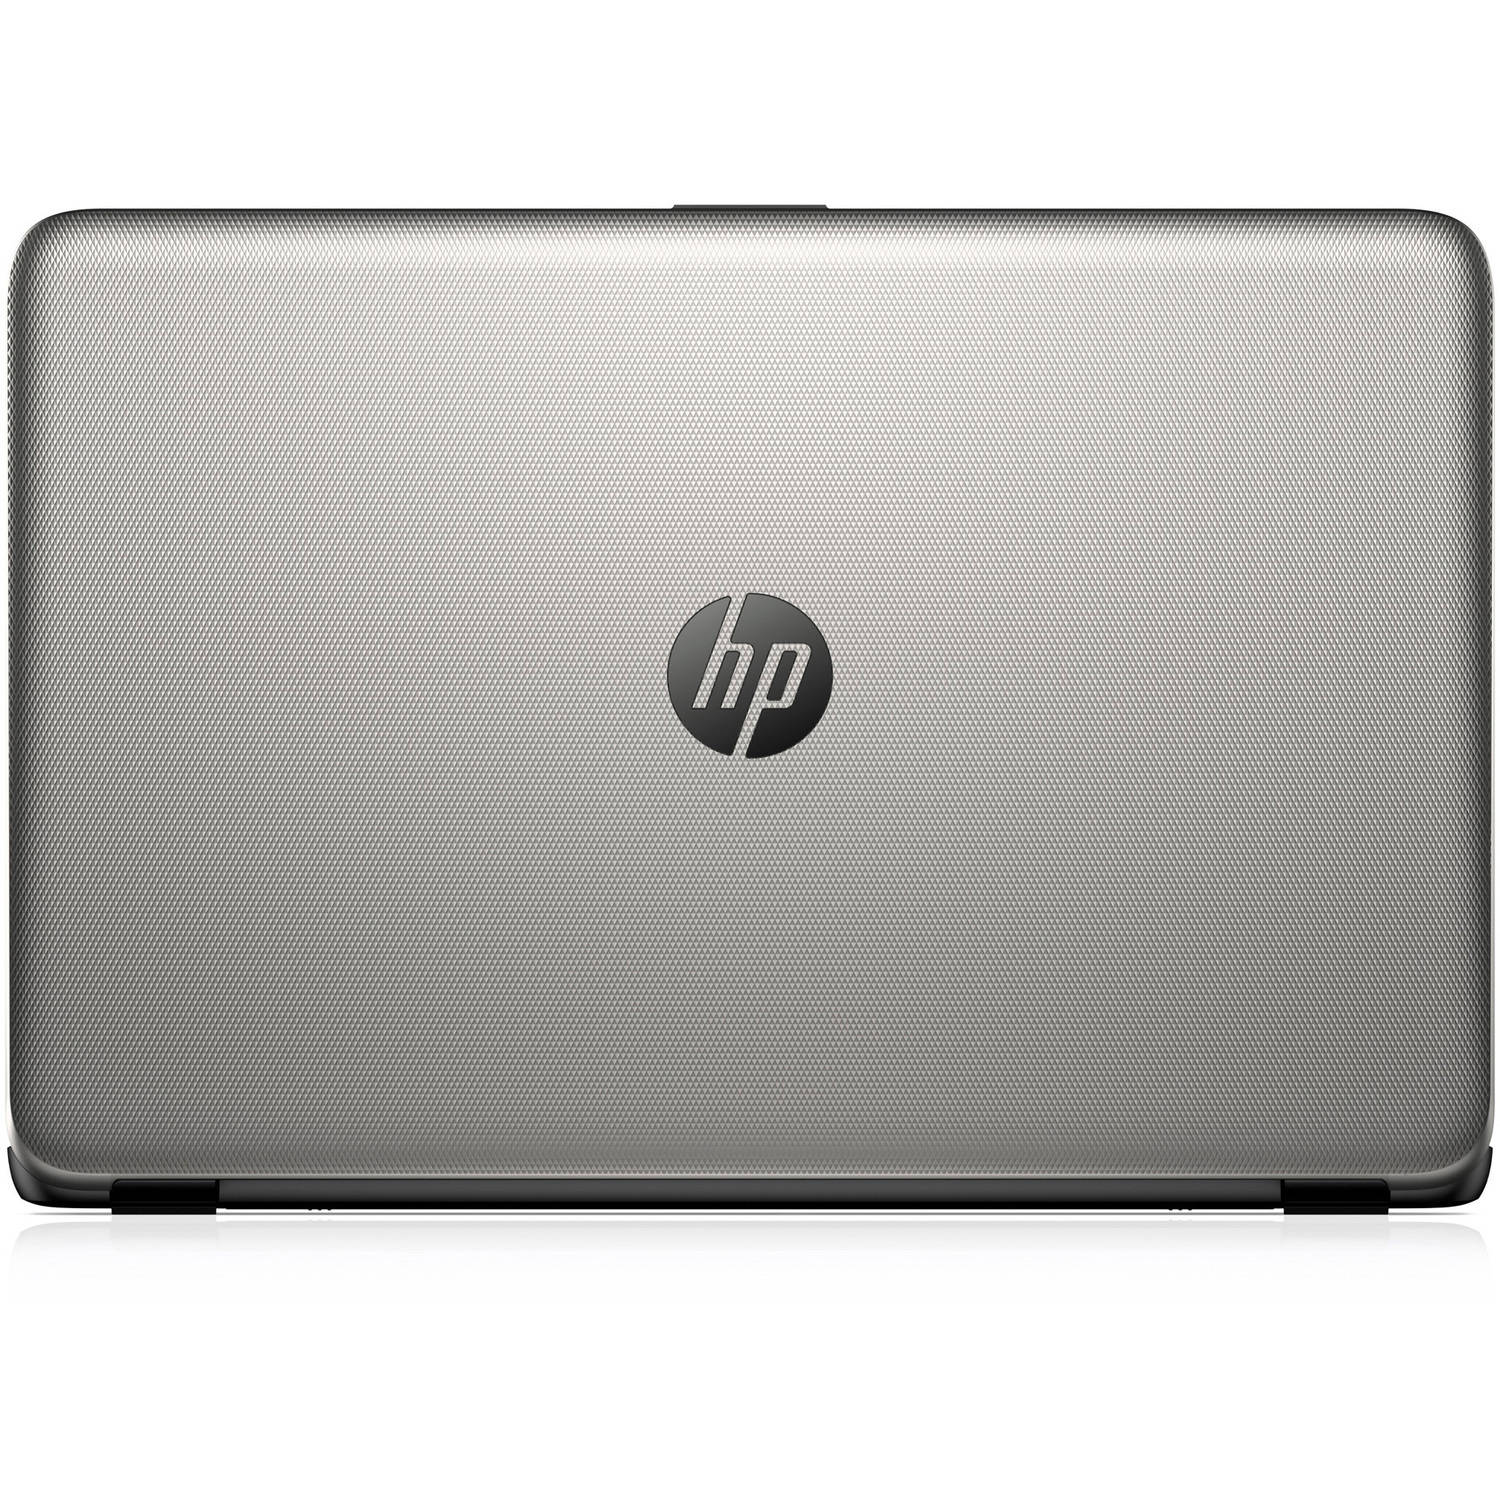 hp pavilion 15 au062nr 15 6 laptop intel i5 6200u 2 3ghz 8gb 1tb win 10 ebay. Black Bedroom Furniture Sets. Home Design Ideas